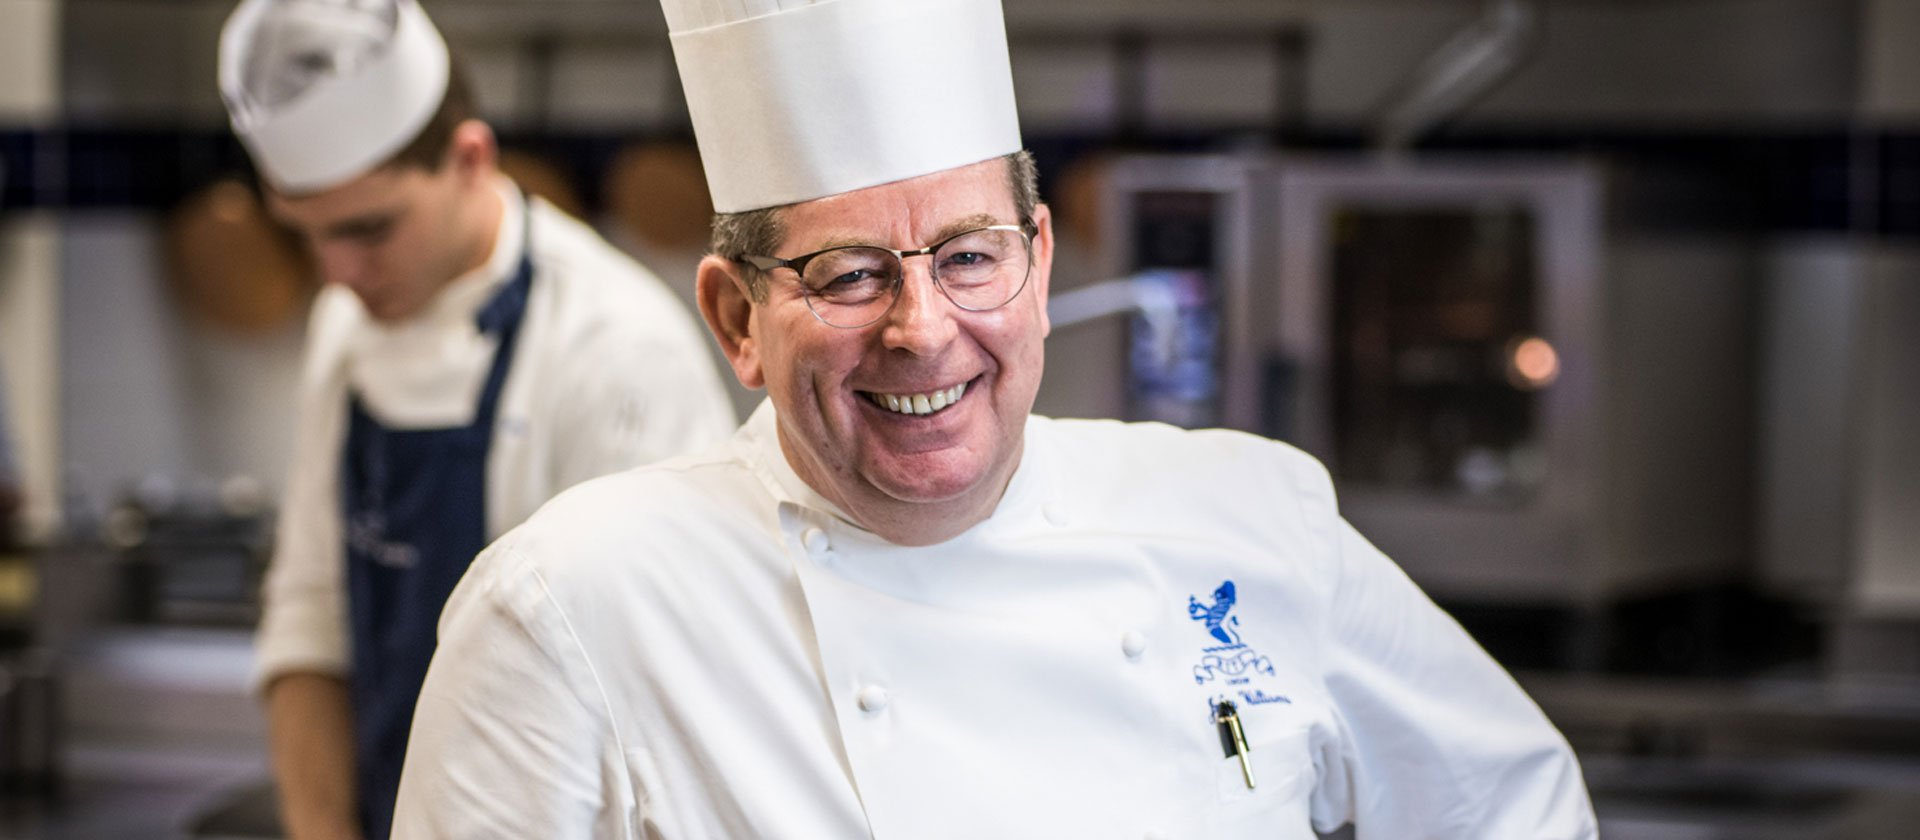 Guest Speaker Event With Chef John Williams Mbe Le Cordon Bleu London